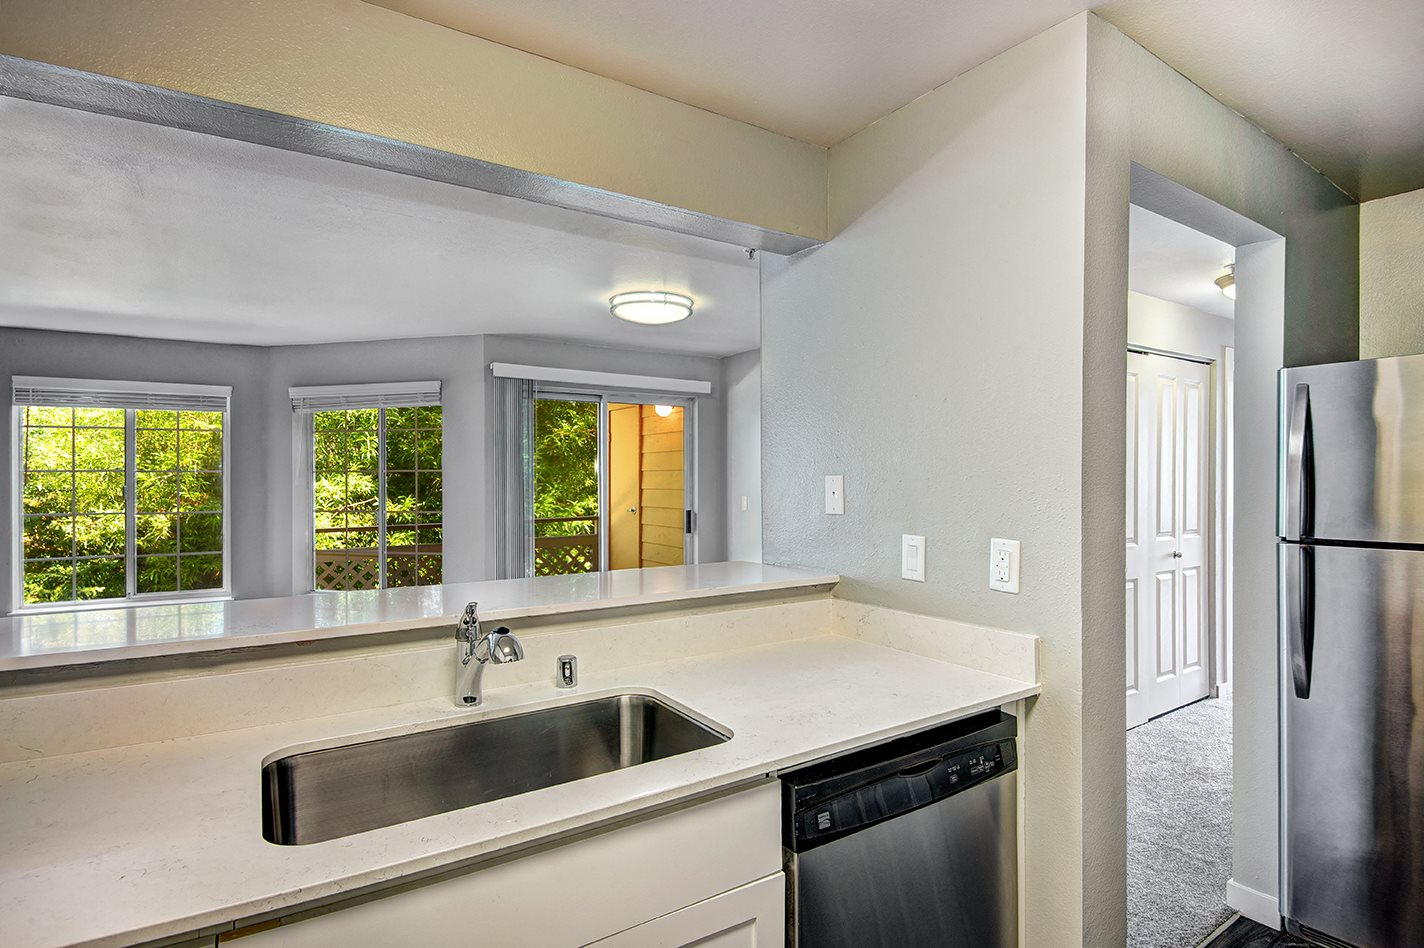 renovated unit kitchen features stainless steel appliances